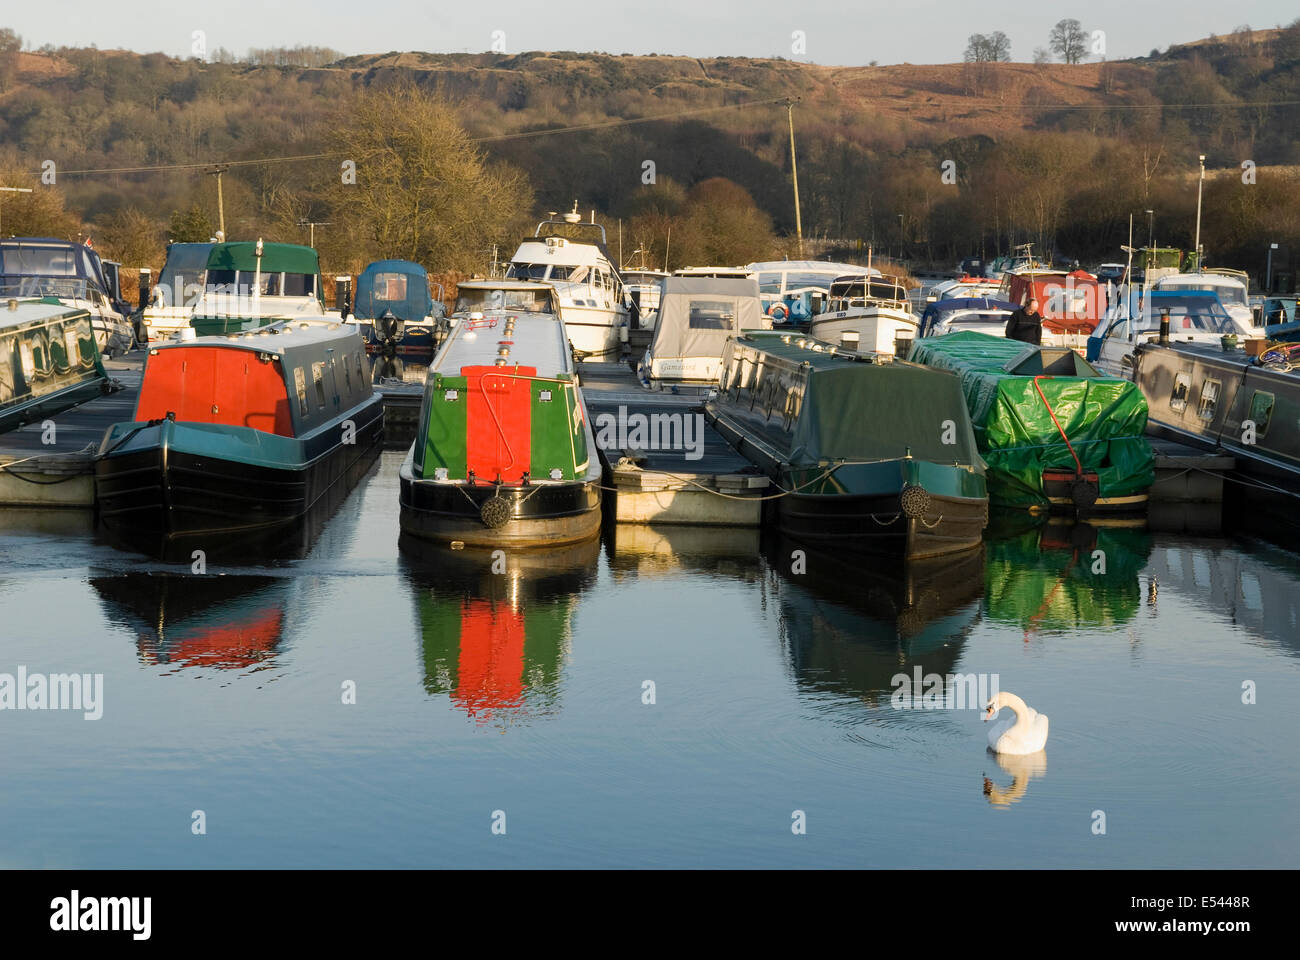 Boats moored at Auchinstarry Marina on the Forth & Clyde Canal. - Stock Image